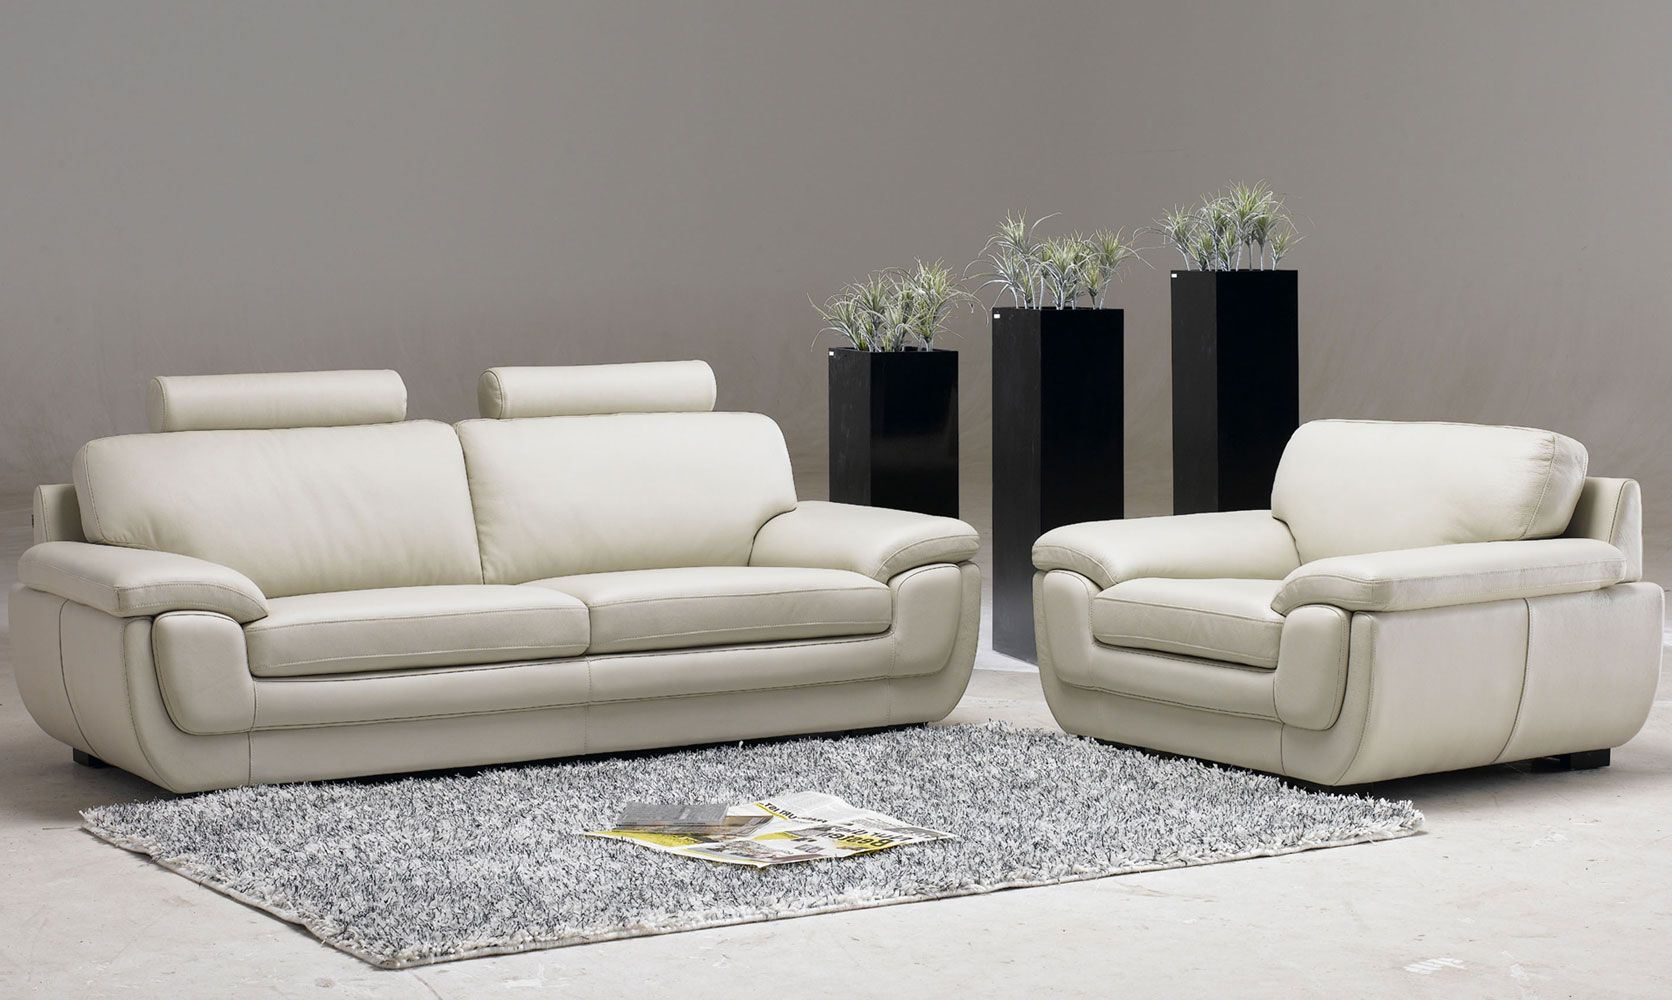 Leather Living Room Set Designed In White